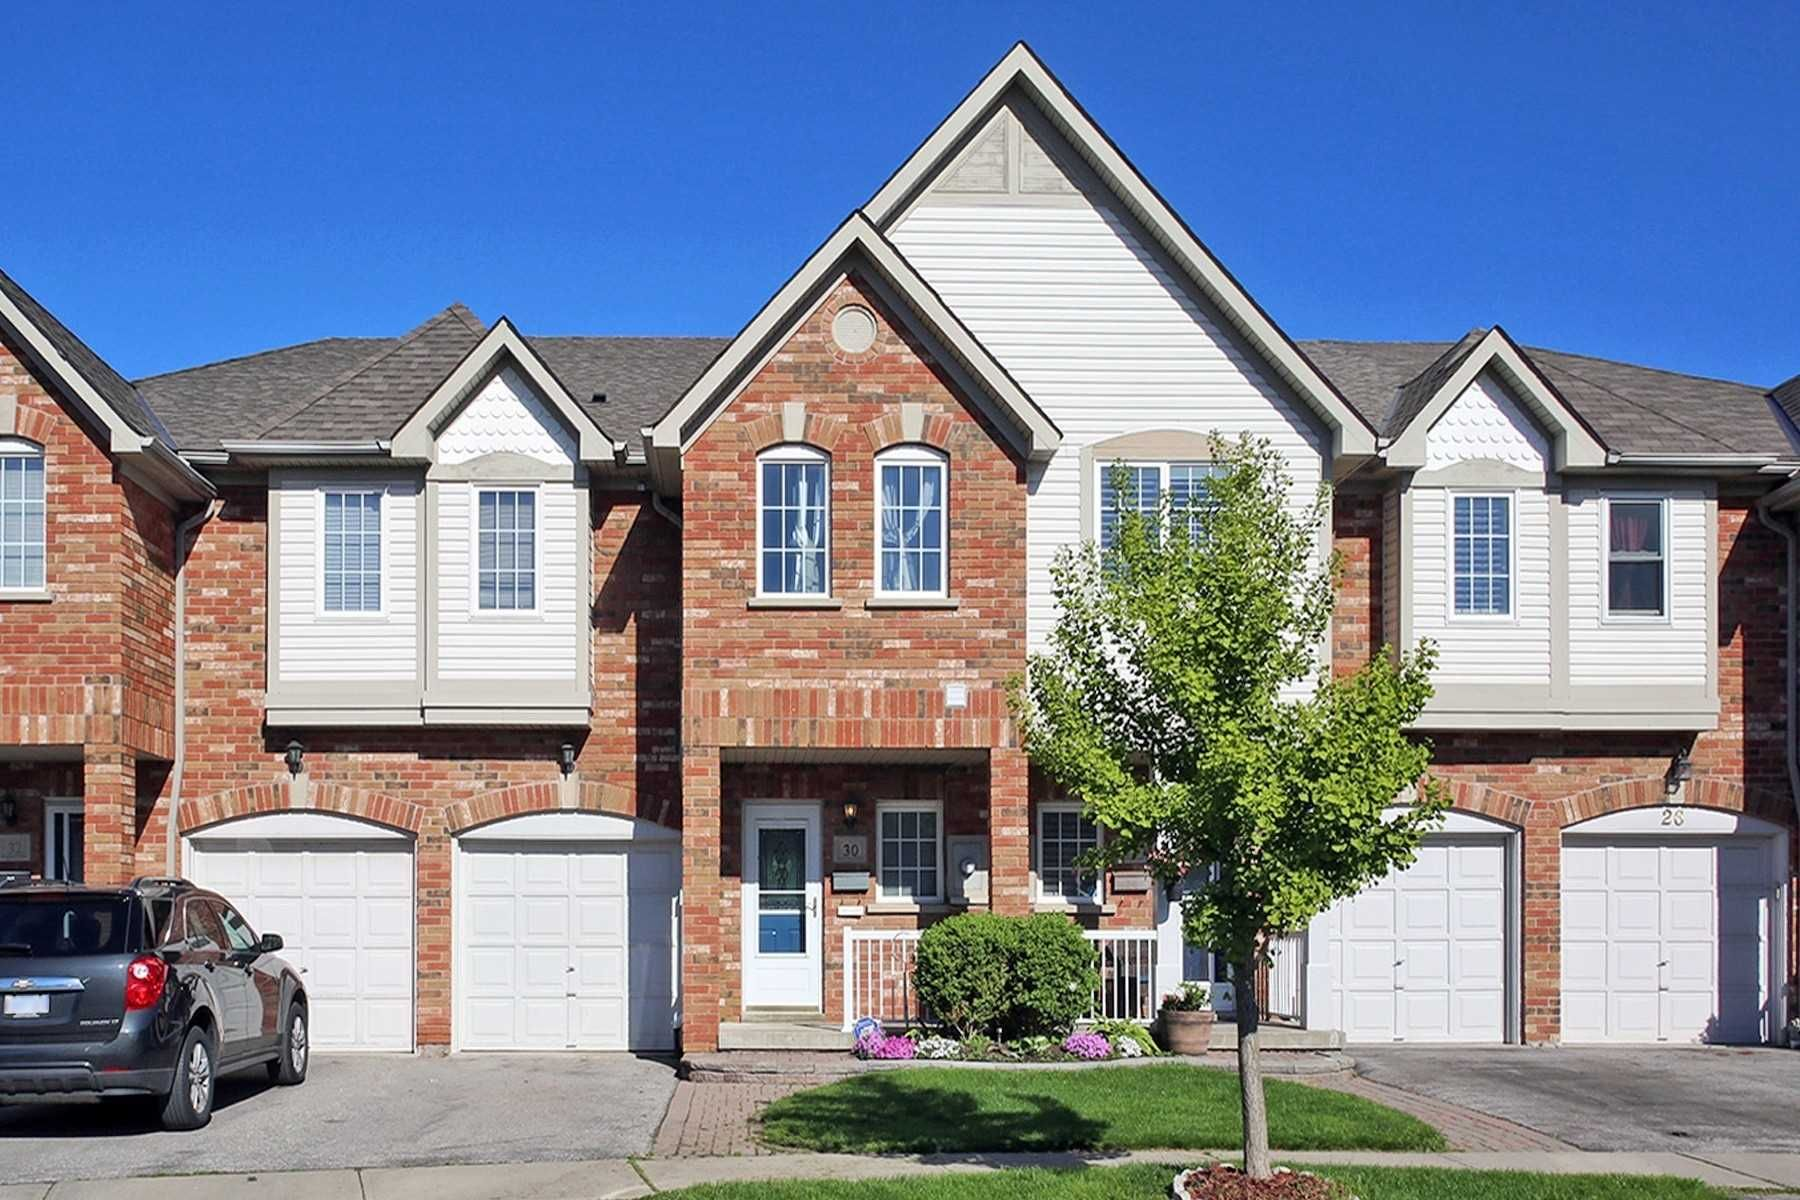 Main Photo: 30 Plantation Court in Whitby: Williamsburg House (2-Storey) for sale : MLS®# E4482636